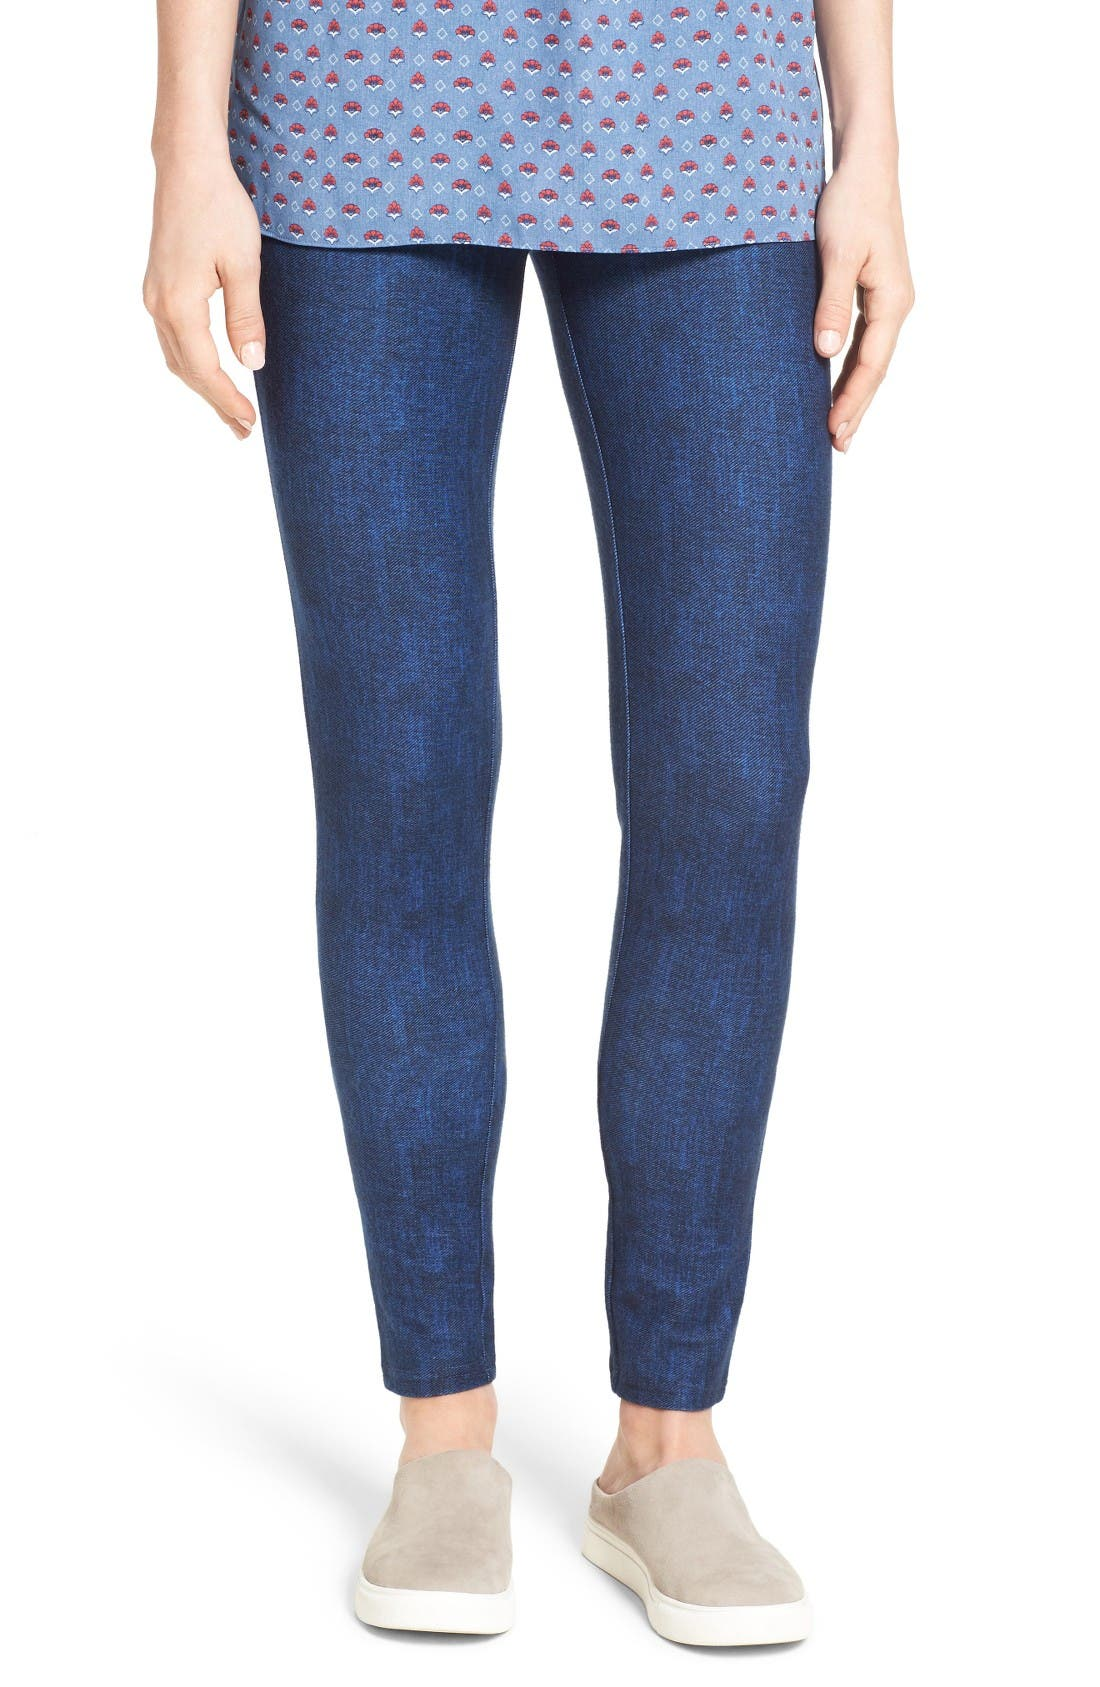 Alternate Image 1 Selected - Michael Kors Denim Leggings